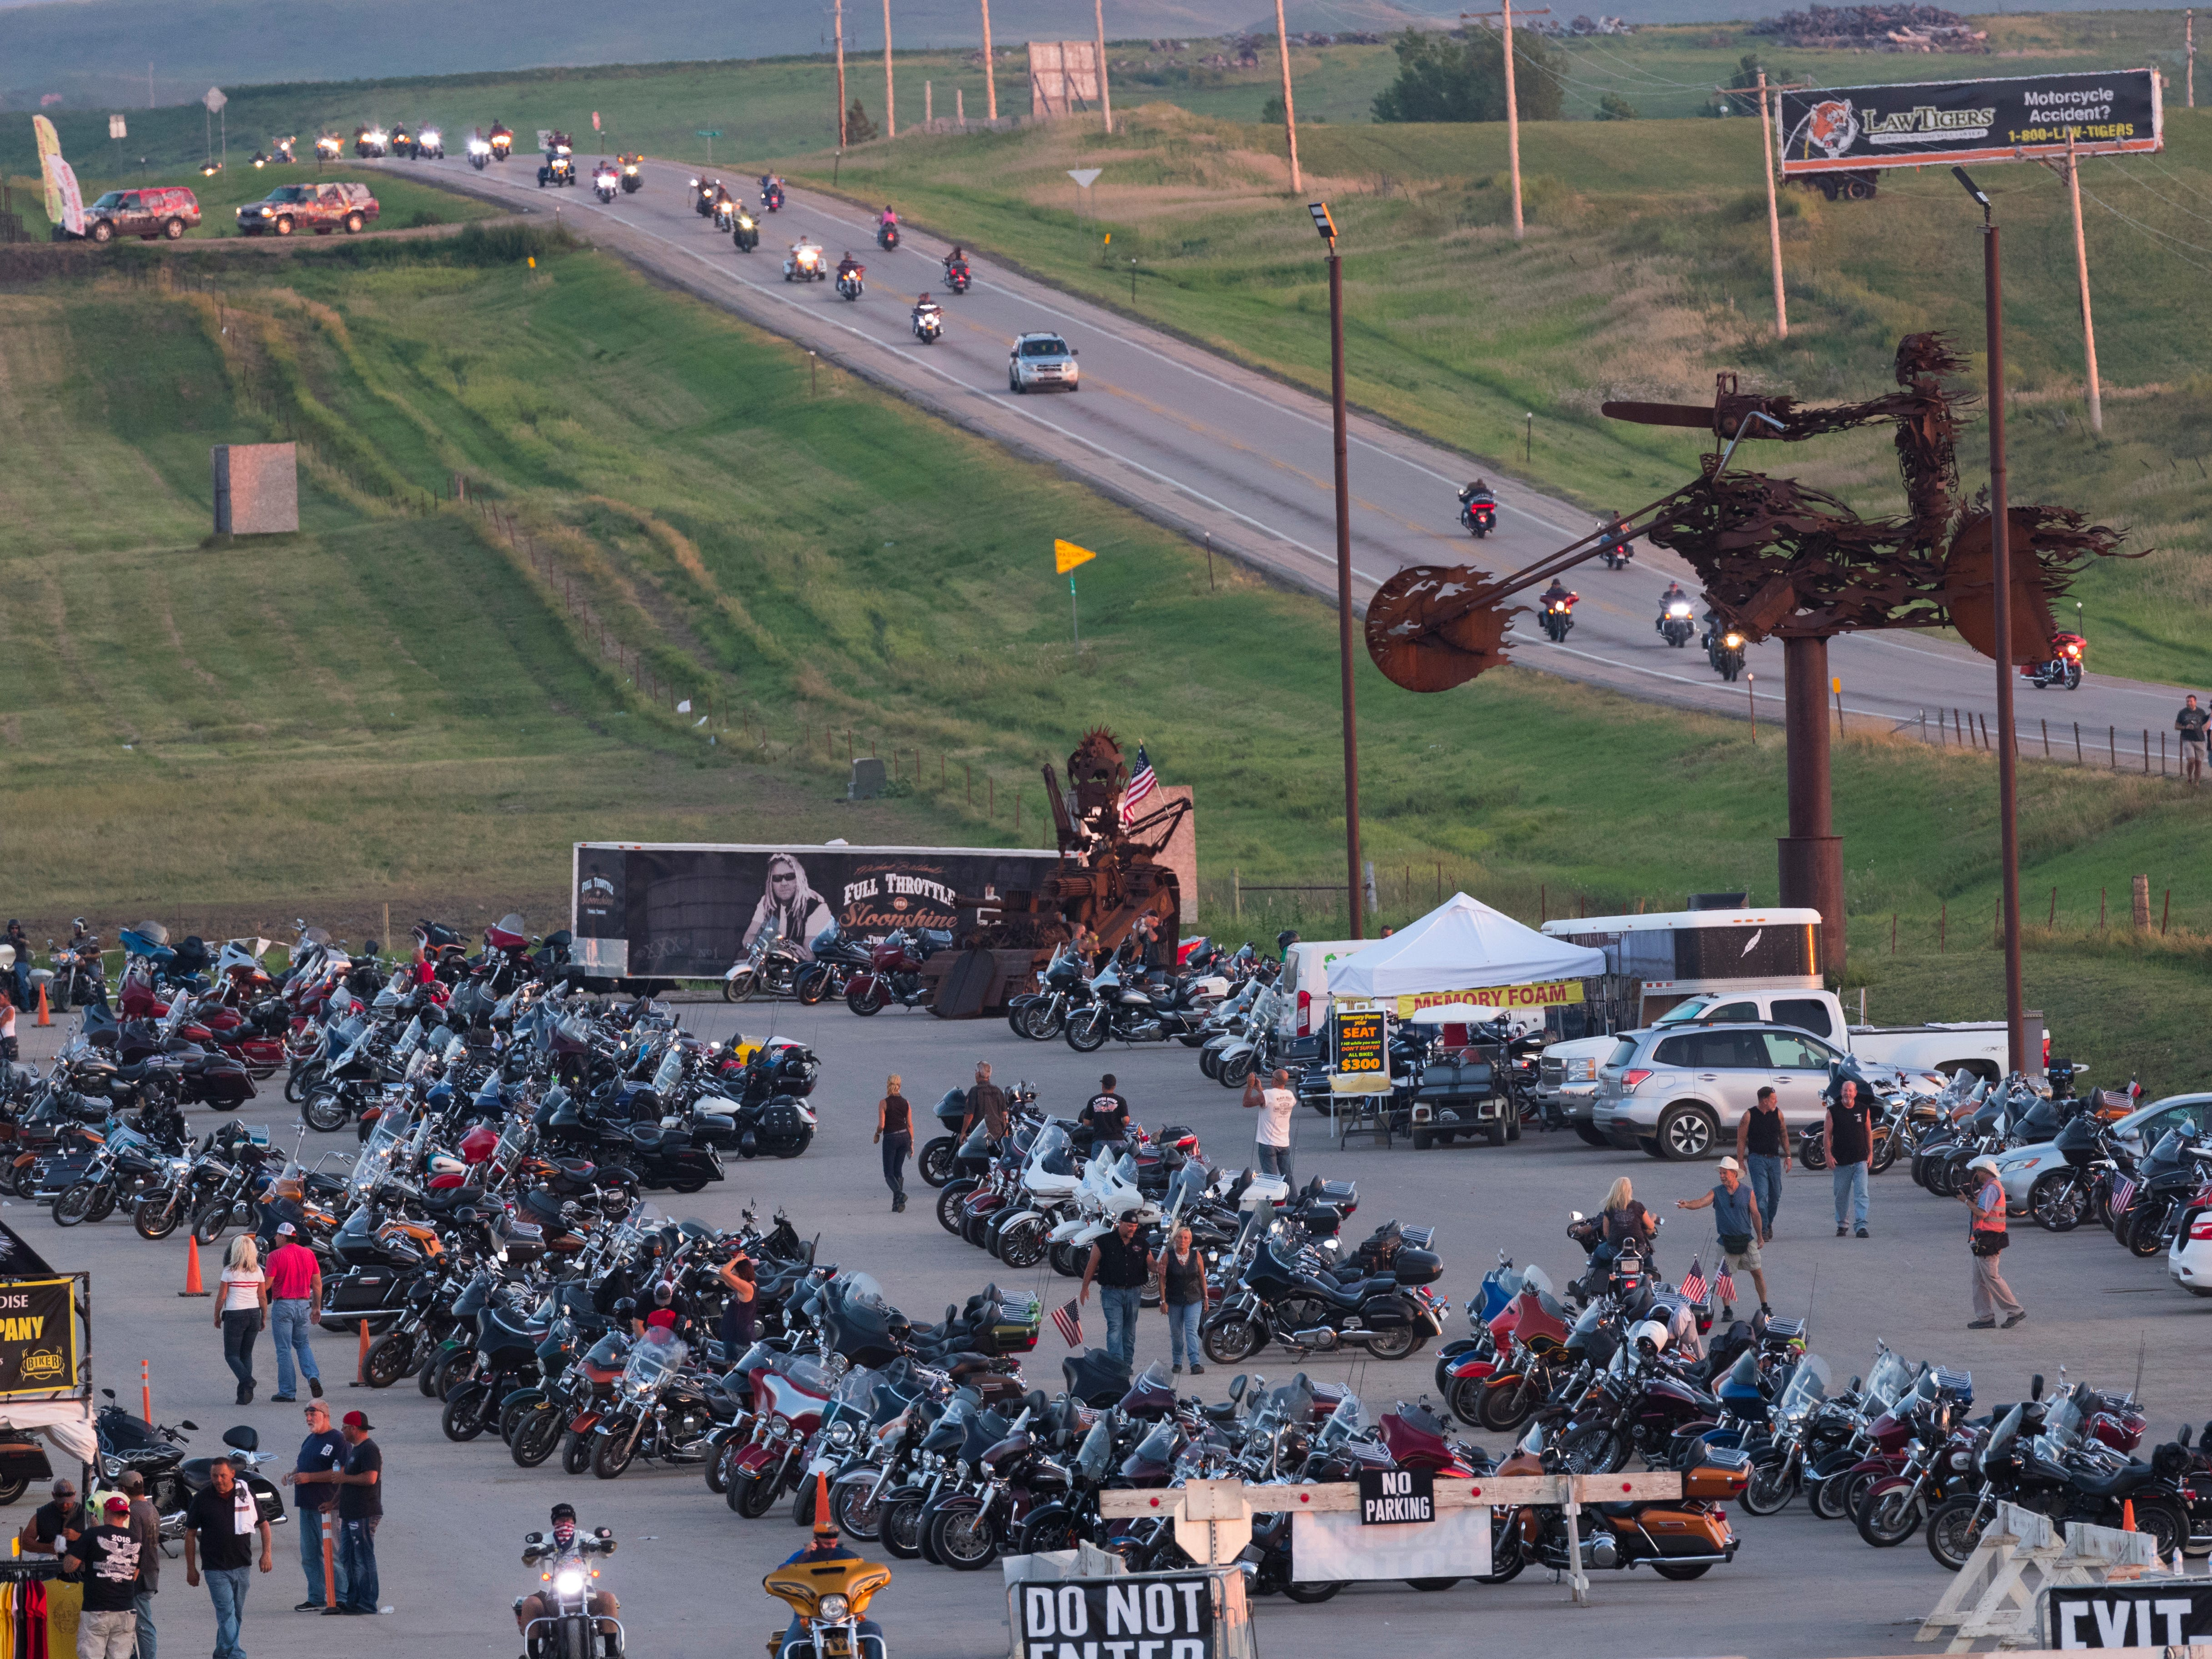 Motorcyclists coming from Sturgis file into the Full Throttle Saloon.